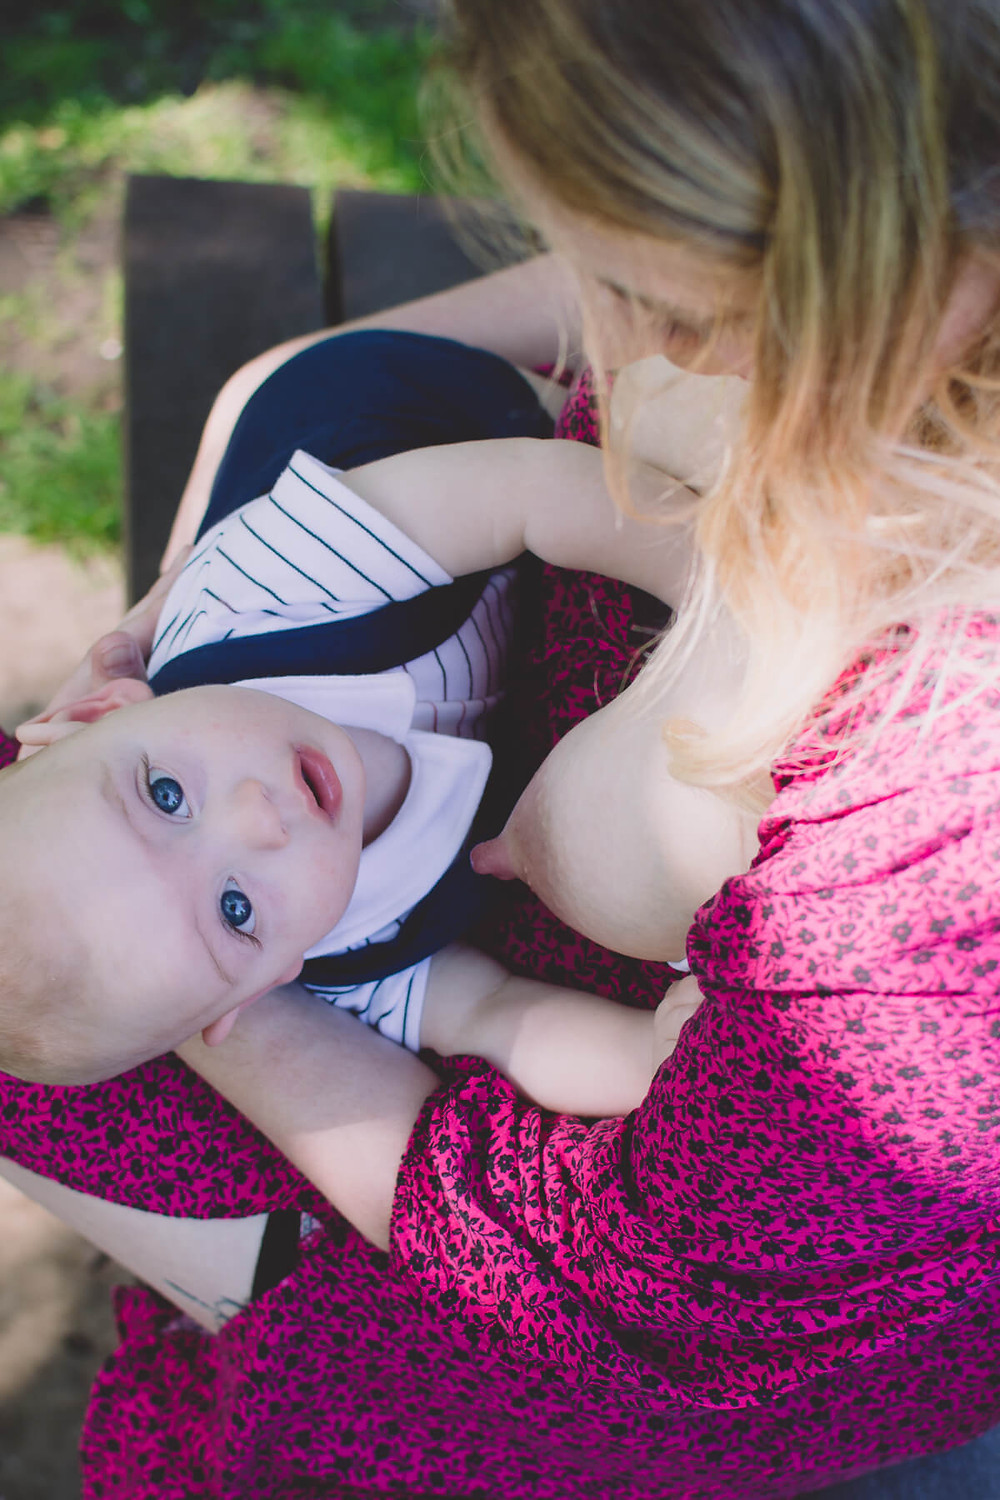 breastfeeding mother portrait close up baby south wales